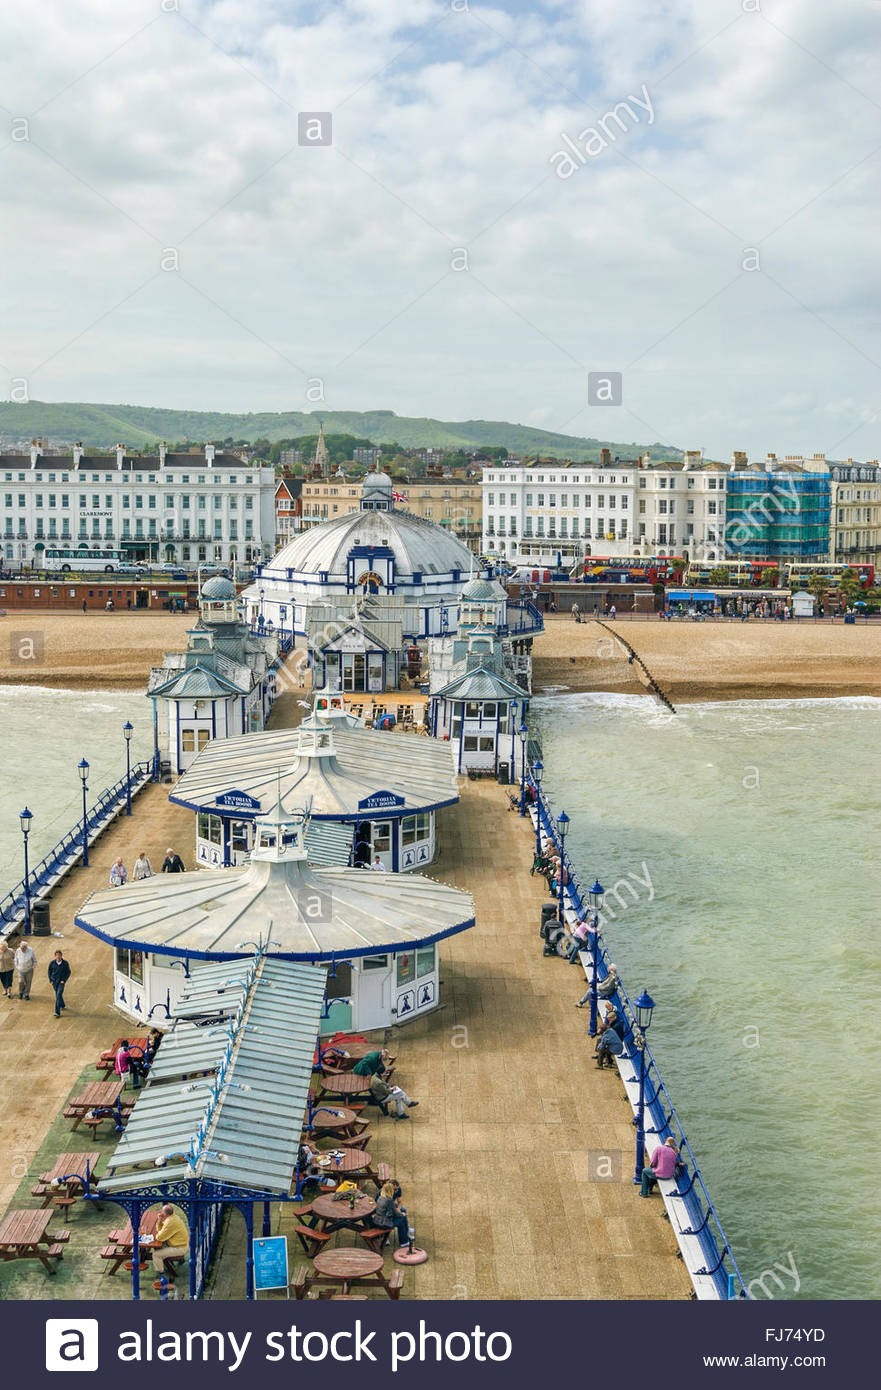 View over the Eastbourne Waterfront and Pier, East Sussex, South England   Aussicht ueber die Strandpromenade von - Stock Image